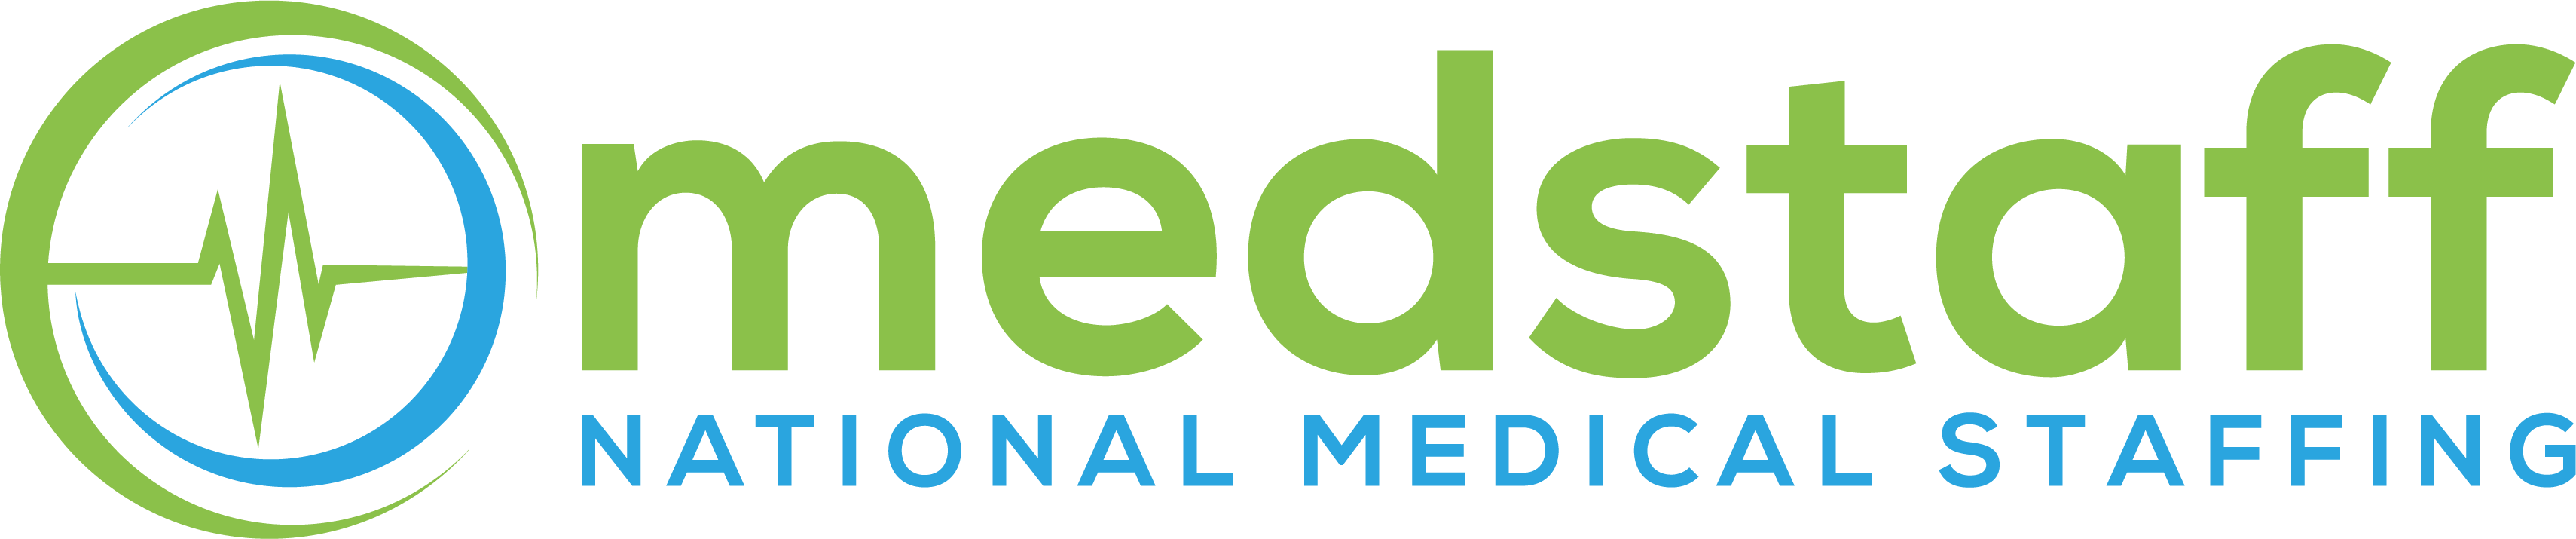 Medstaff National Medical Staffing Logo